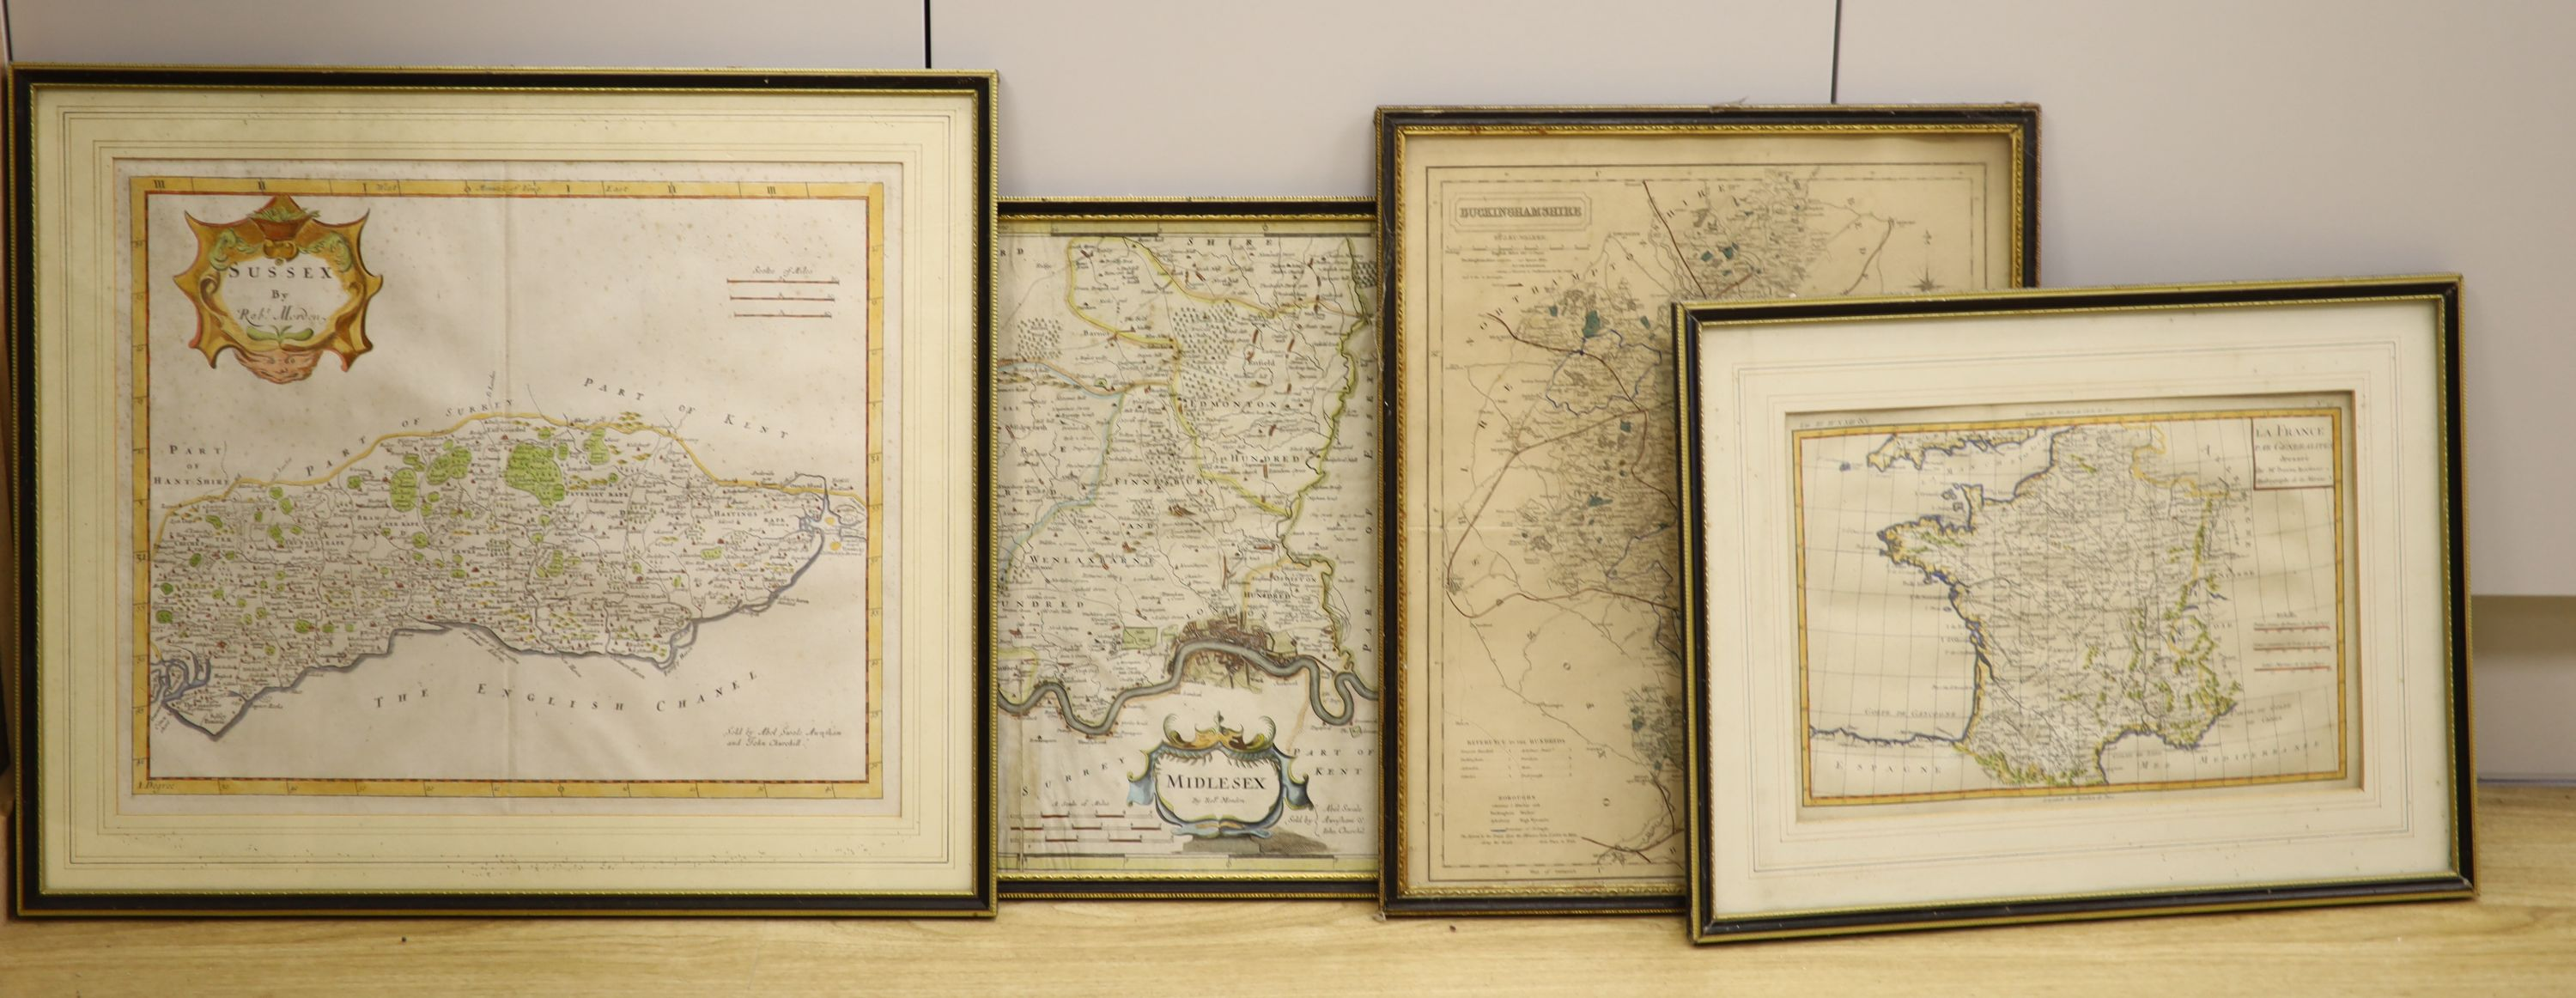 Robert Mordan, two coloured engravings, Maps of Sussex and Midlesex, together with two later